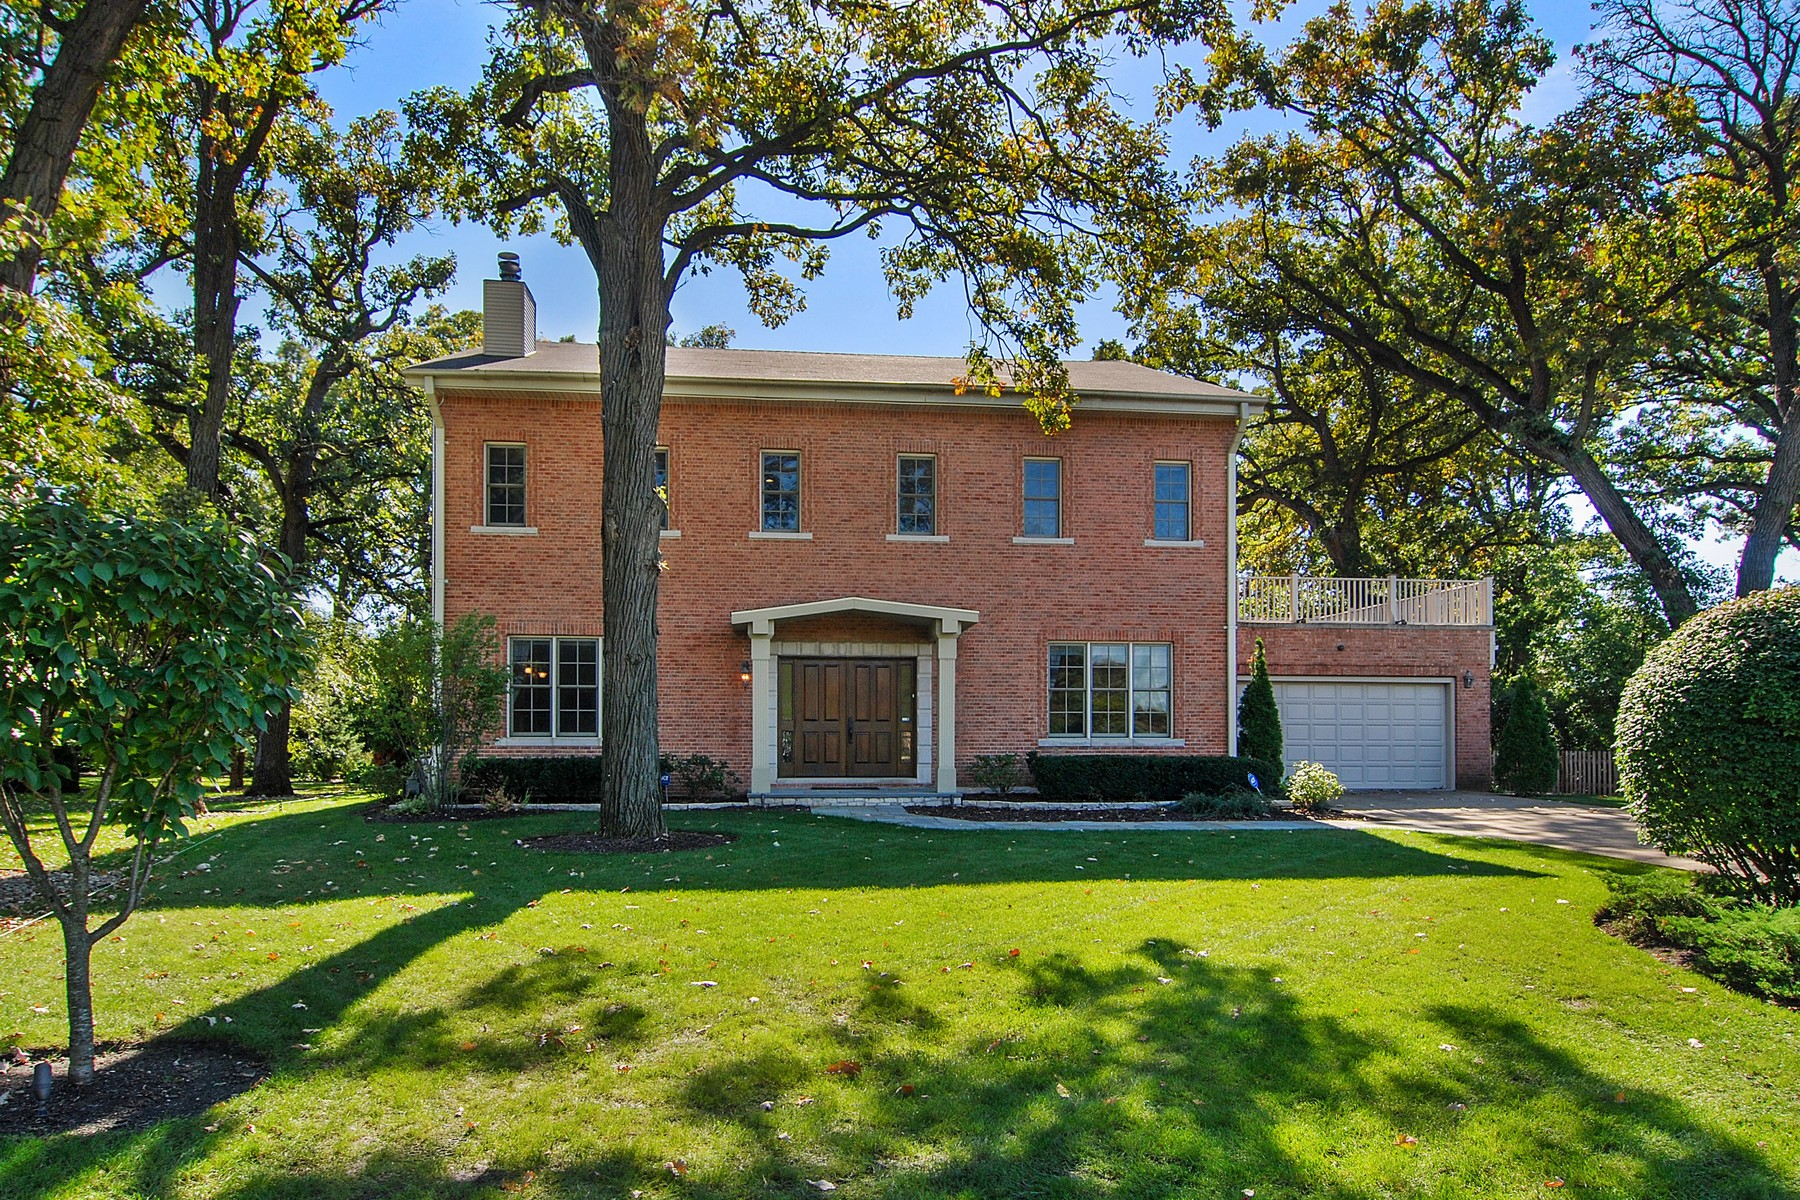 Villa per Vendita alle ore 39 Woodside Oak Brook, Illinois, 60523 Stati Uniti